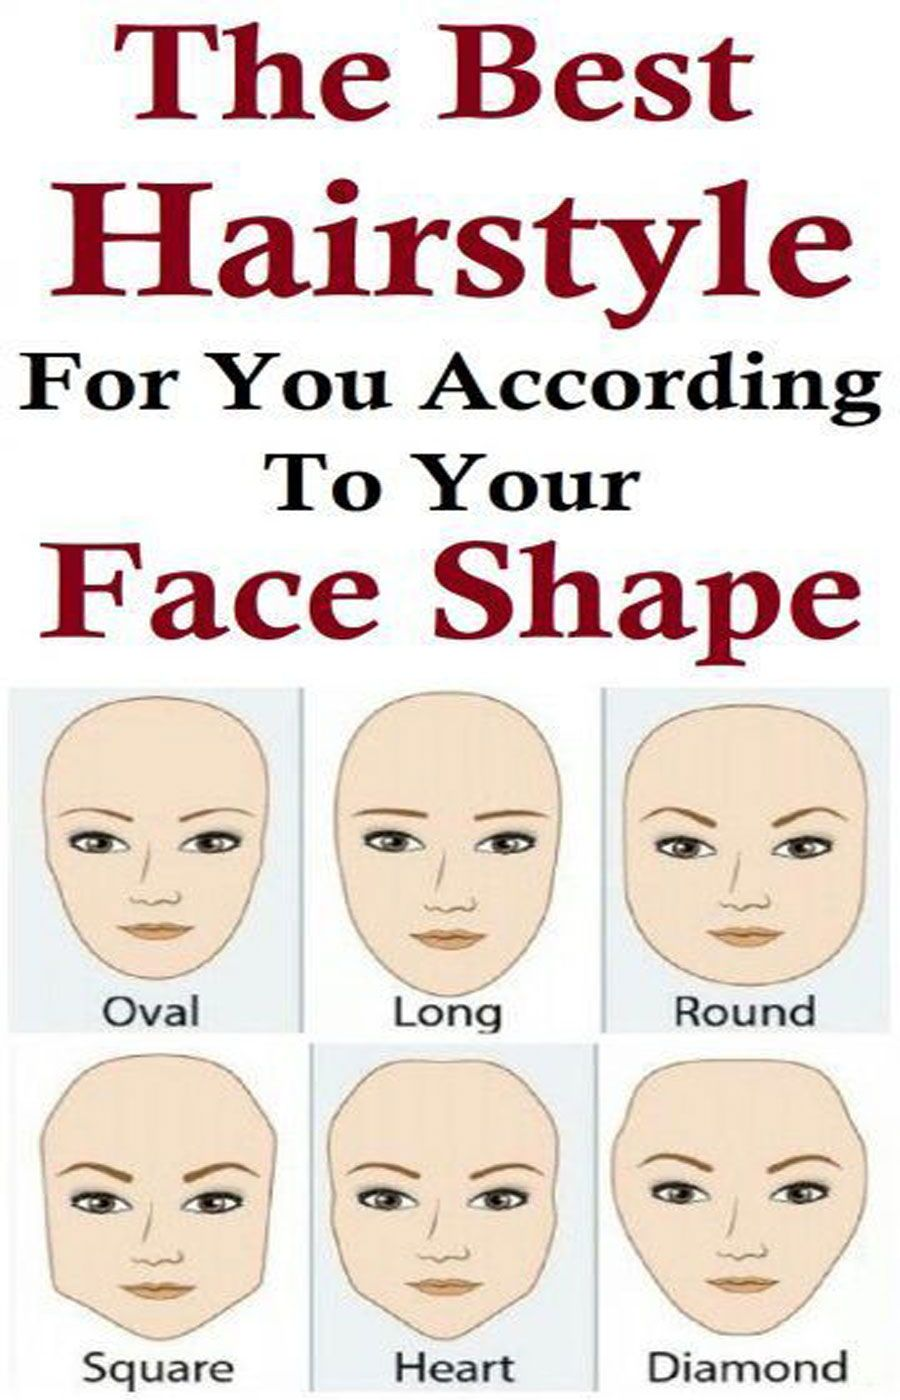 How To Find The Best Hairstyle For Your Face Shape Haircut For Face Shape Long Face Shapes Face Shape Hairstyles